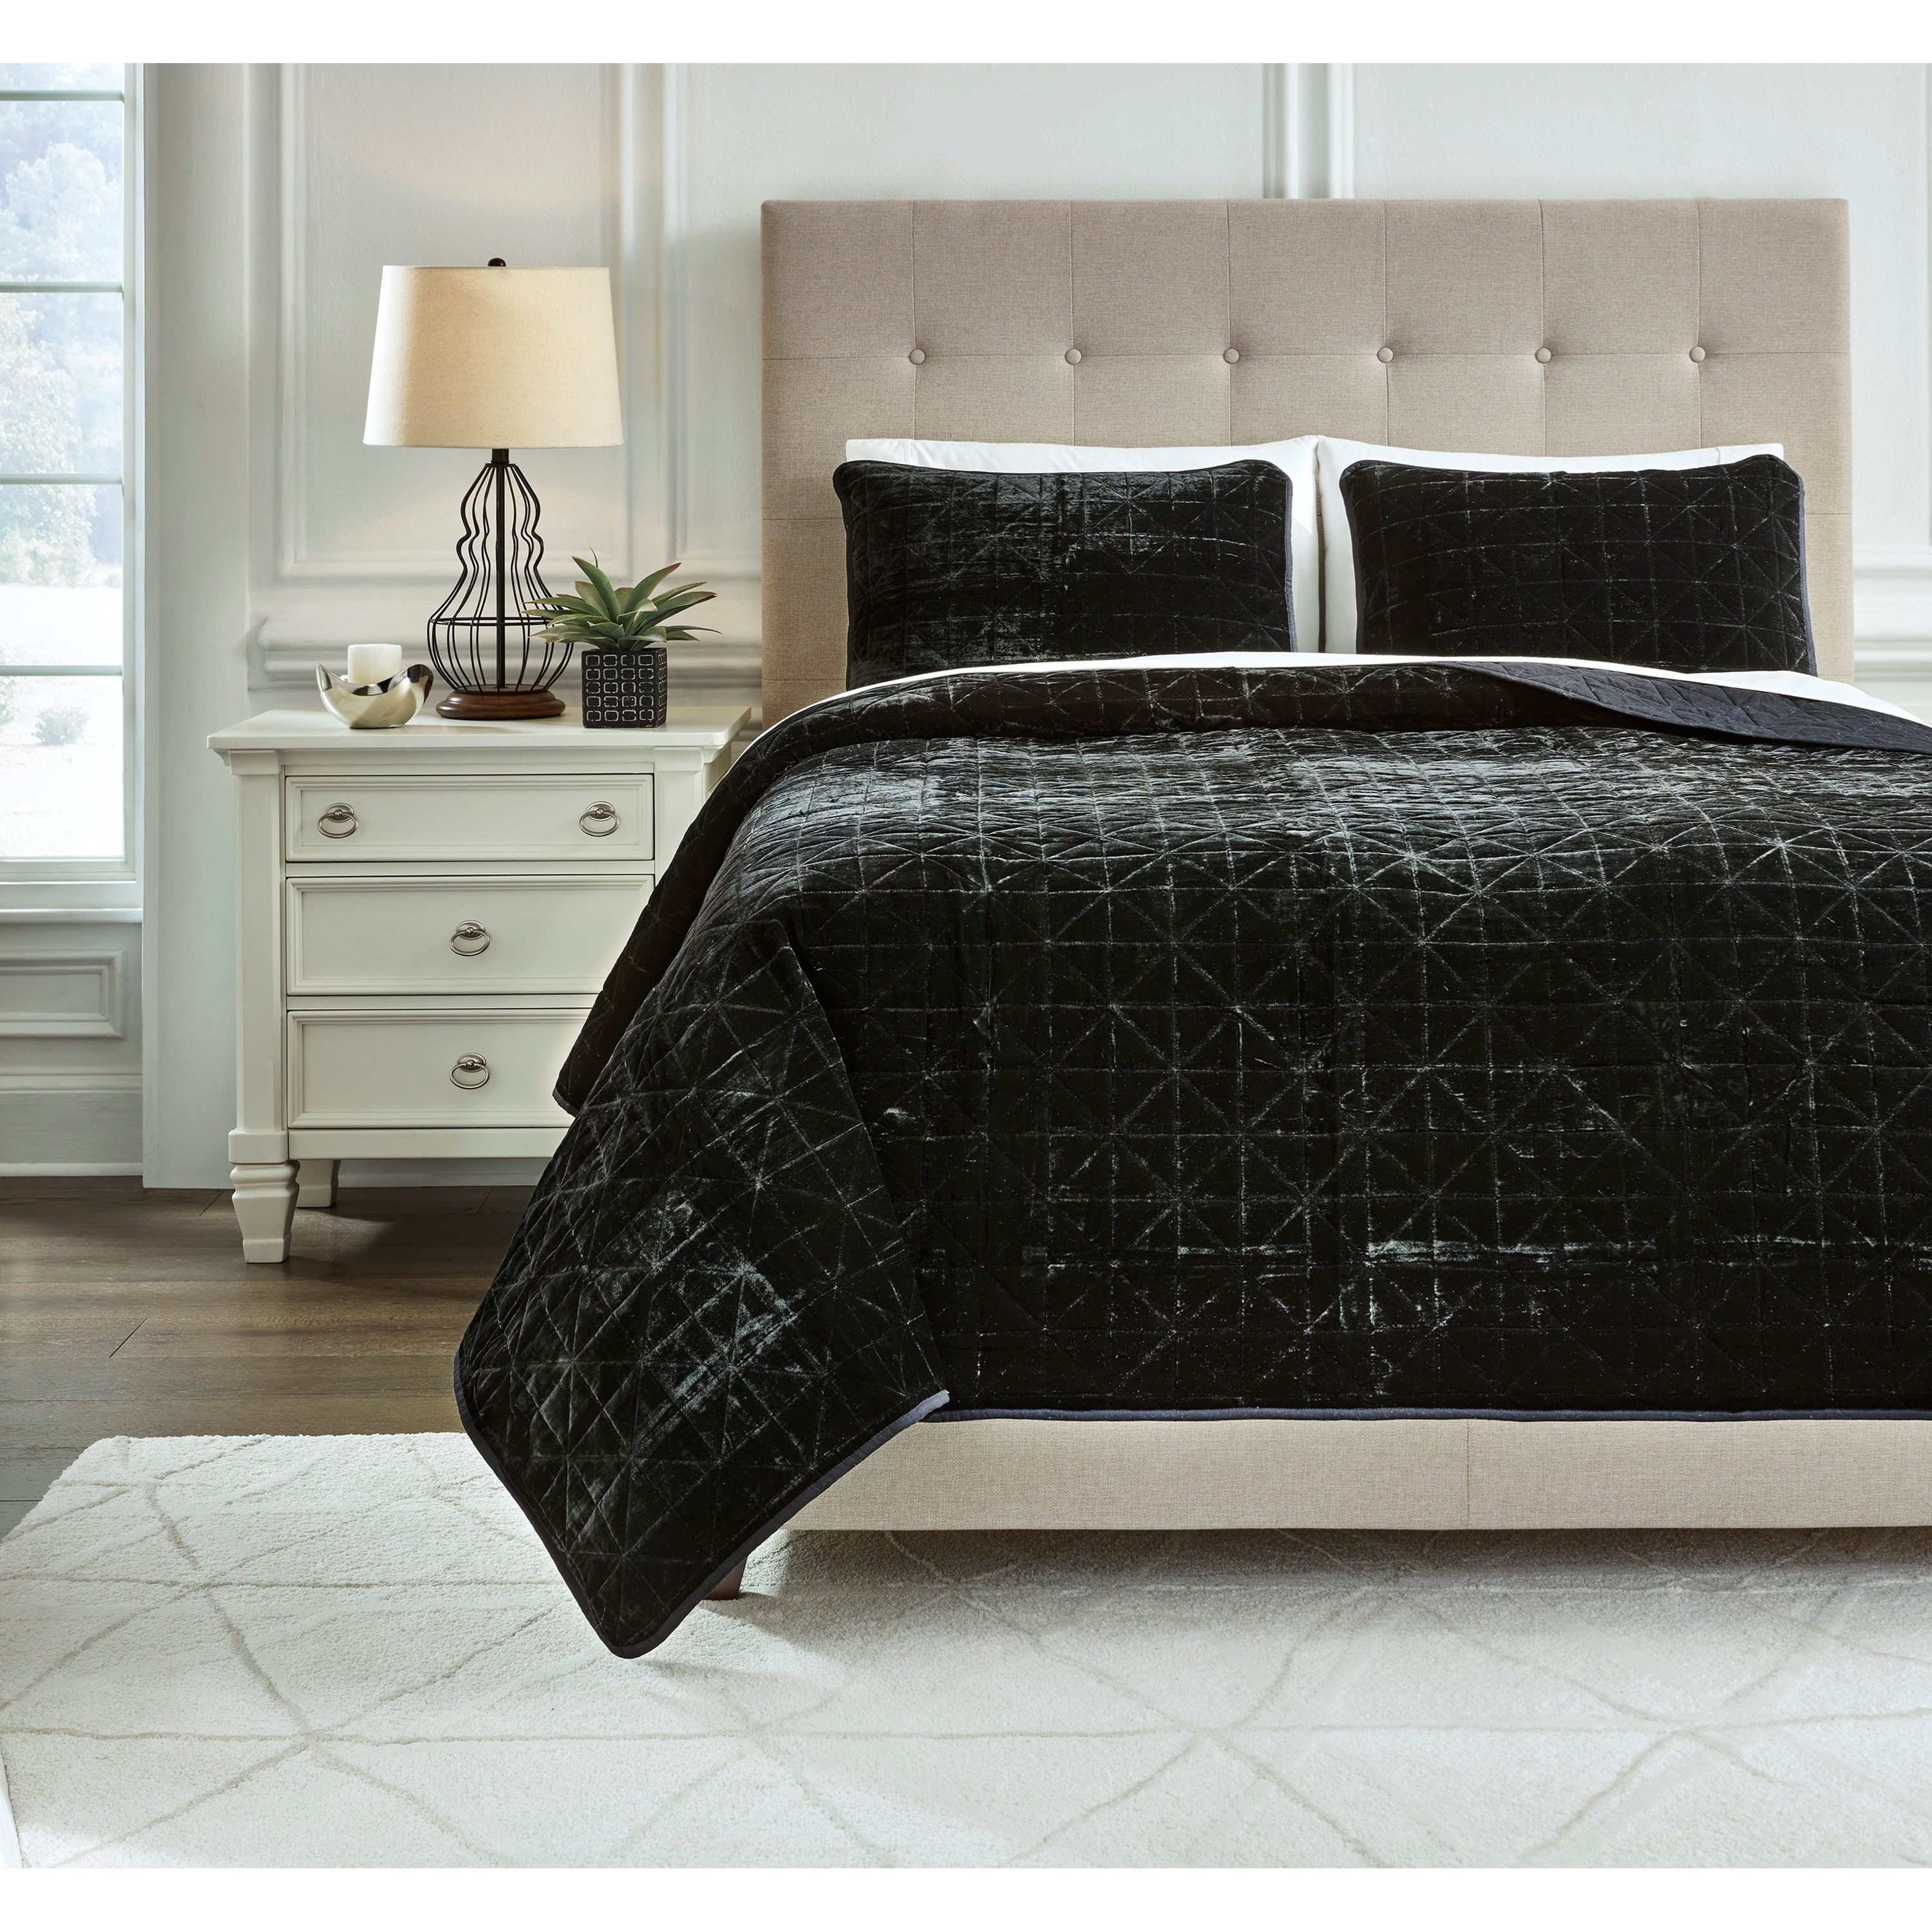 Bedding Sets Queen Dairick Black Quilt Set by Signature Design by Ashley at Household Furniture